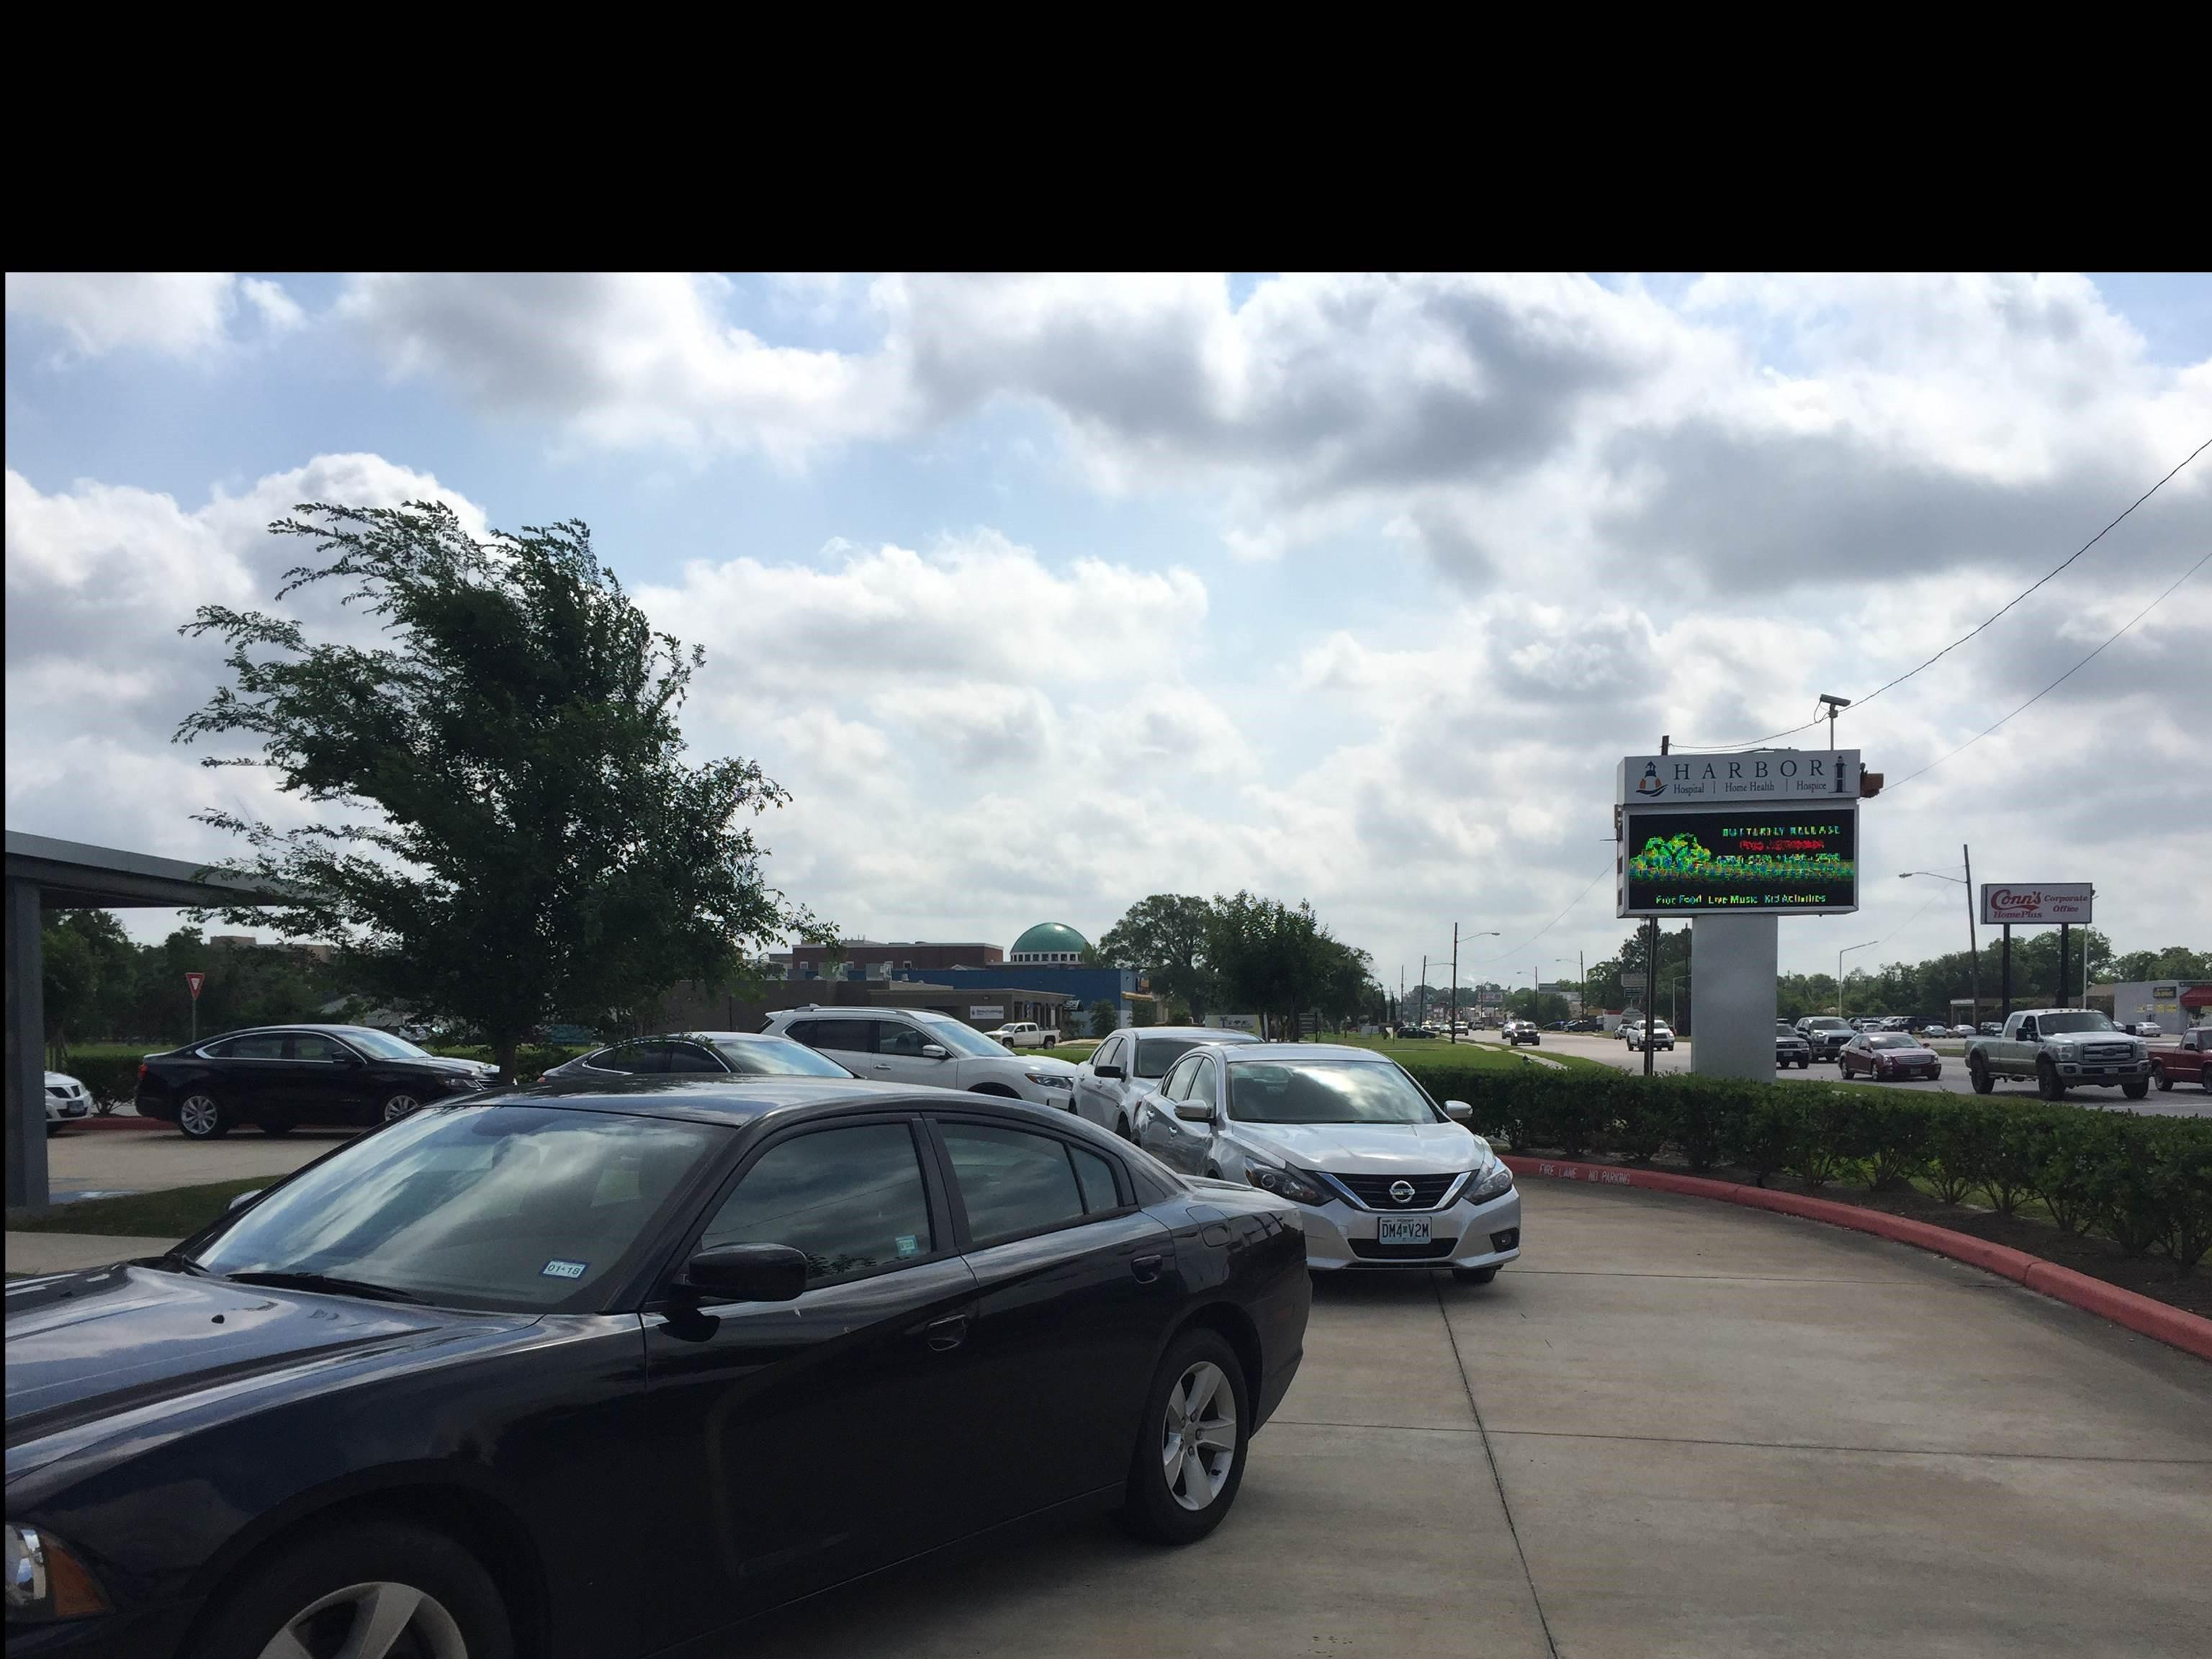 There is an ongoing federal investigation at the Harbor Healthcare clinic and hospice in Beaumont, 6 News has confirmed through a spokeswoman at the U.S. Attorney's Office. The clinic is located at 3406 College Street. Federal agents also searched the Harbor Hospice on Major Drive. (KFDM photo)